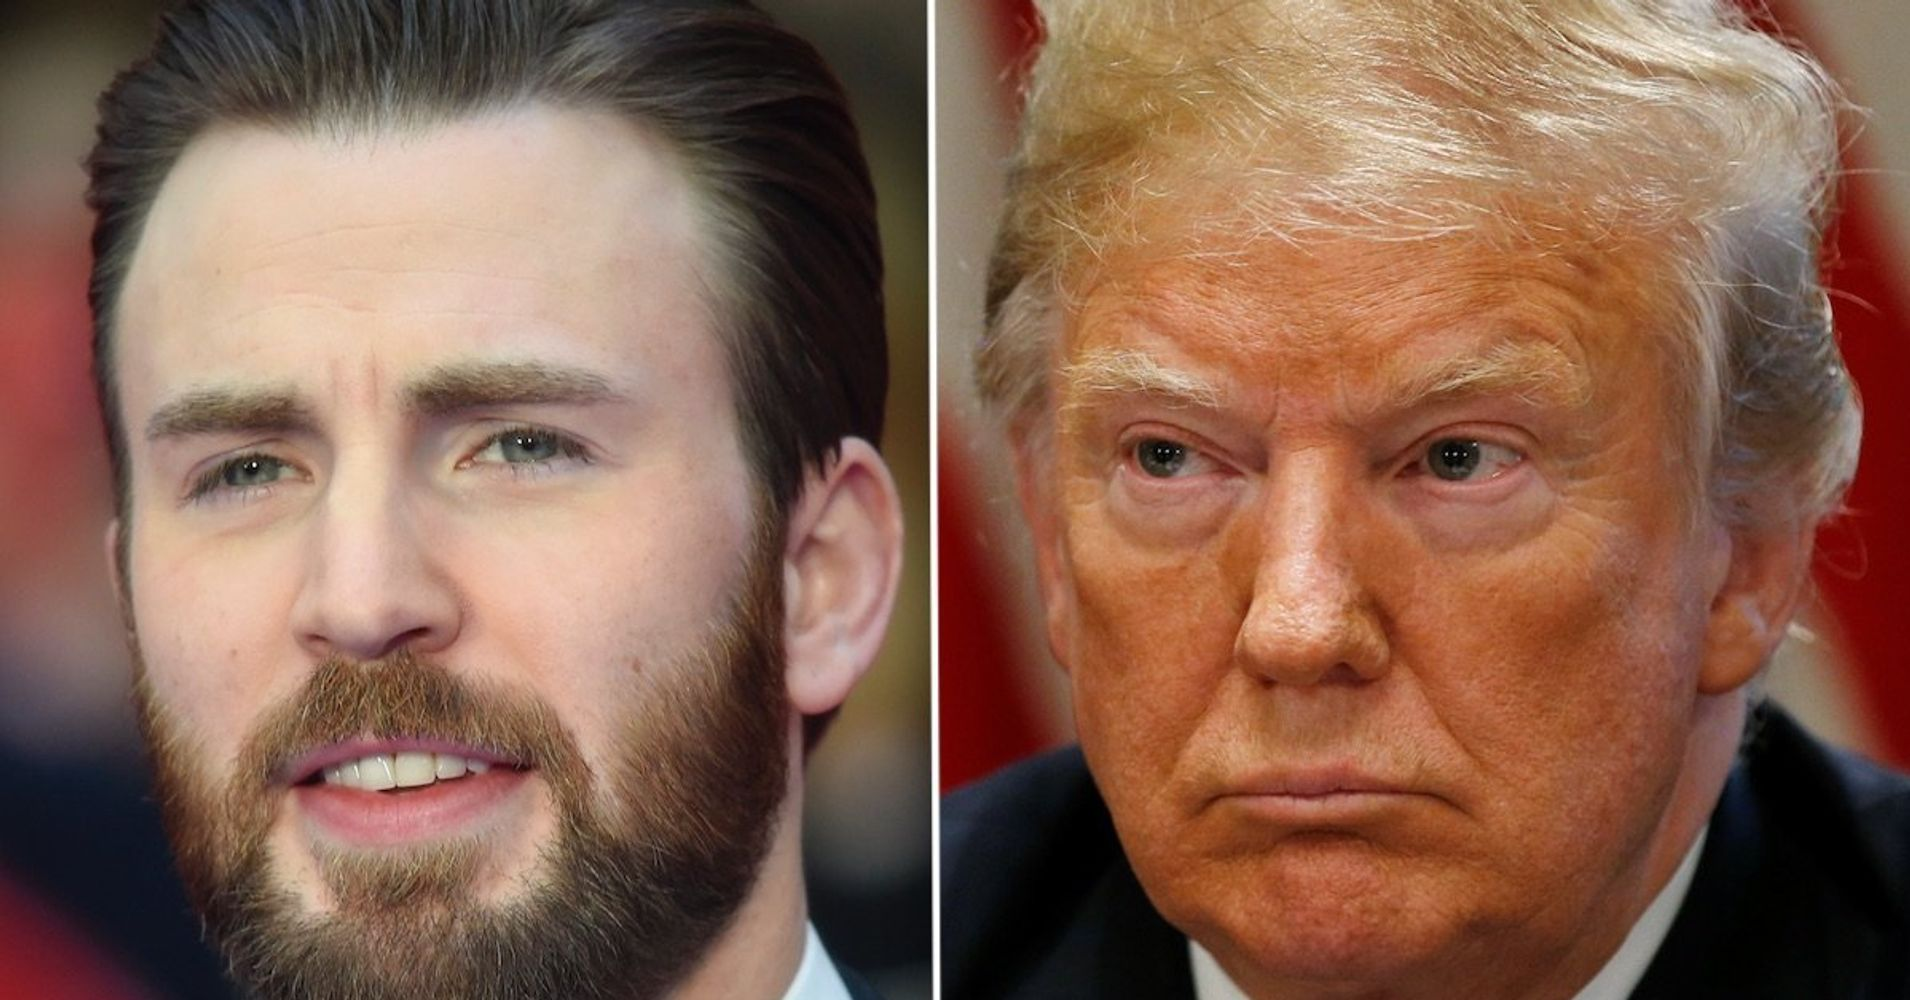 Westlake Legal Group 5b58283019000014035004e8 Chris Evans Exposes 'Painfully Transparent' Reason For Trump's Racist Attack